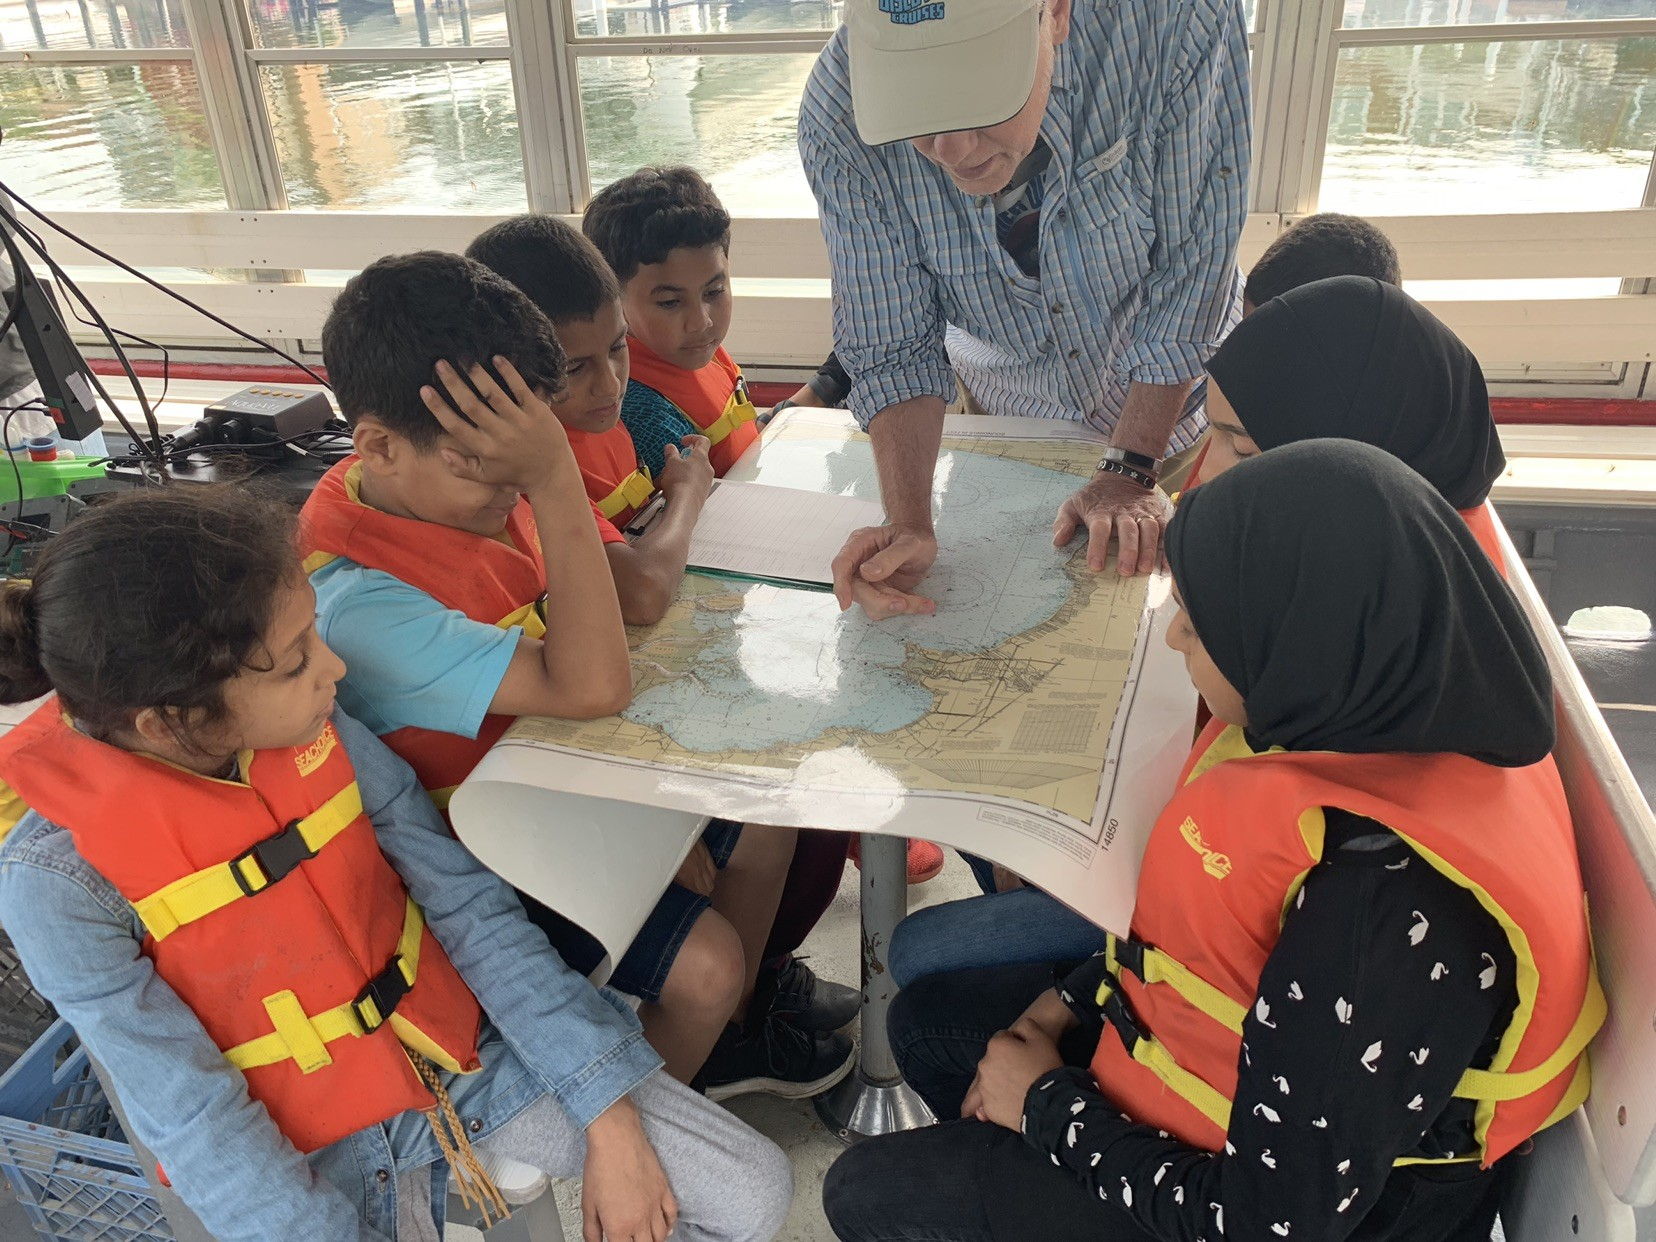 Students from Dearborn's ACCESS, a 21st Century CLC program, learn about life on the Detroit River while touring on the 'Schoolship' Clinton in July 2019.